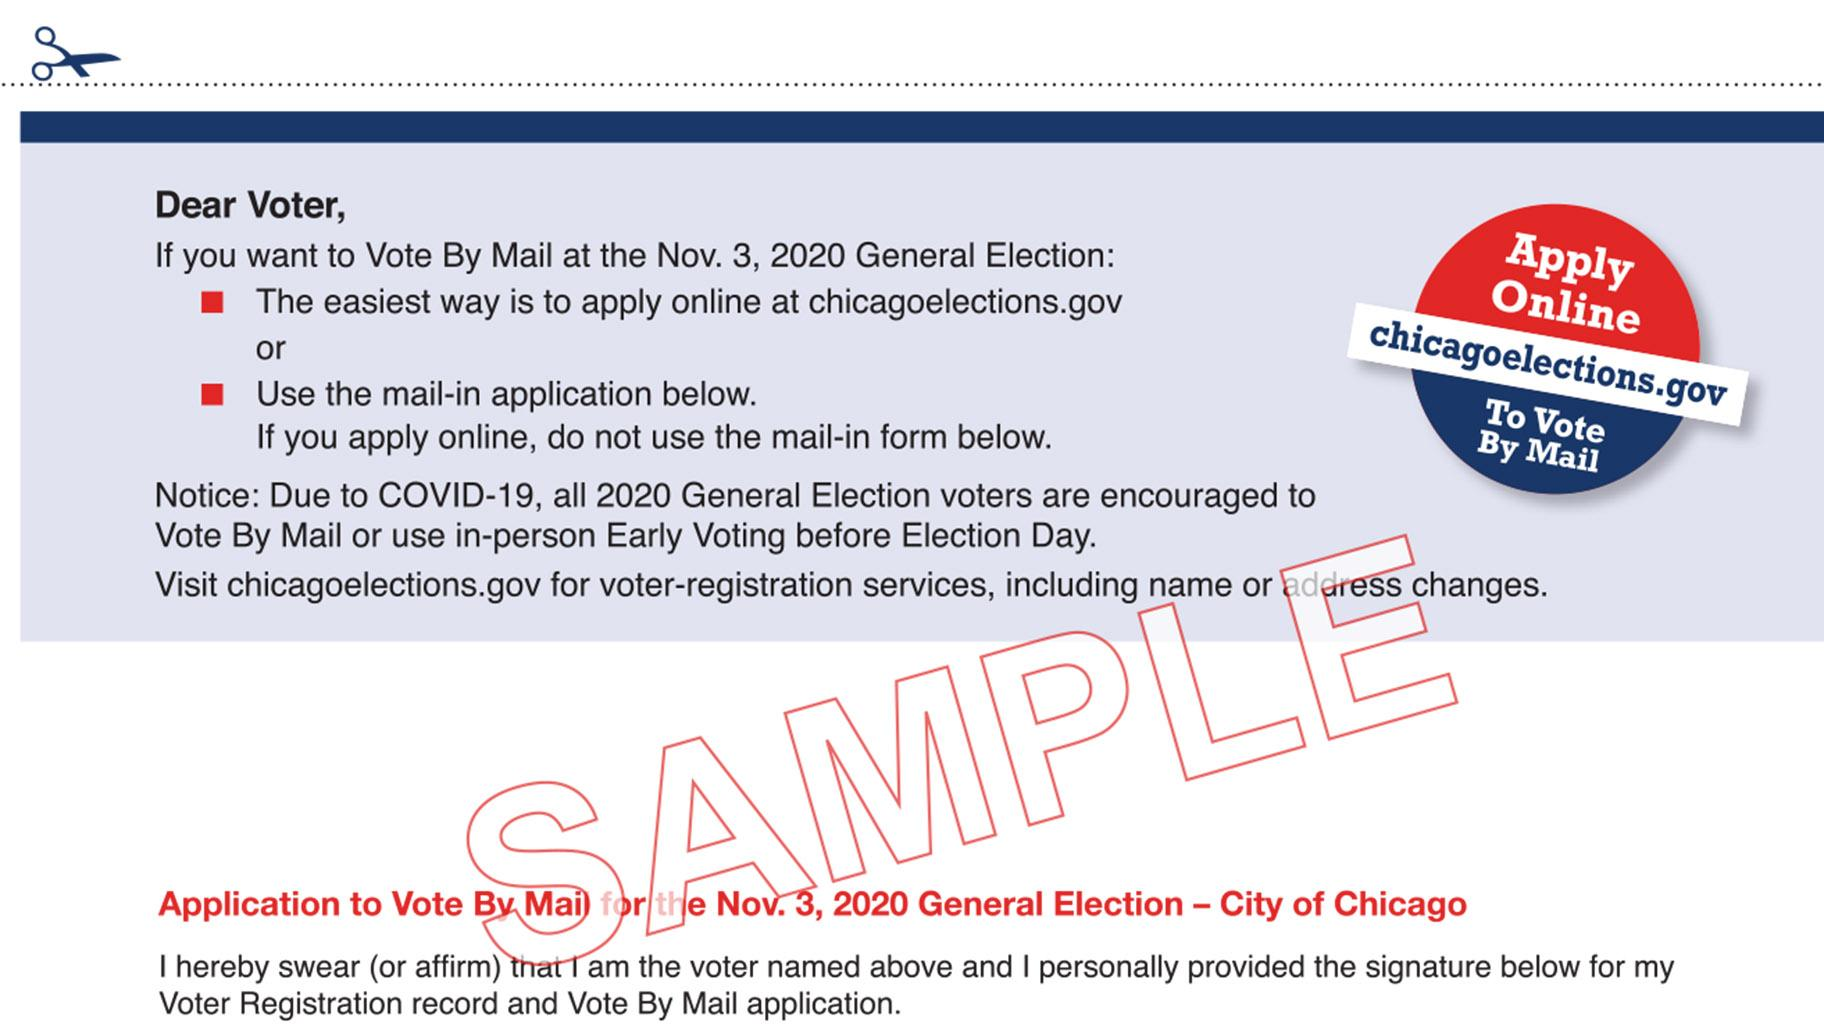 A vote-by-mail sample application. (Click to view full document.)